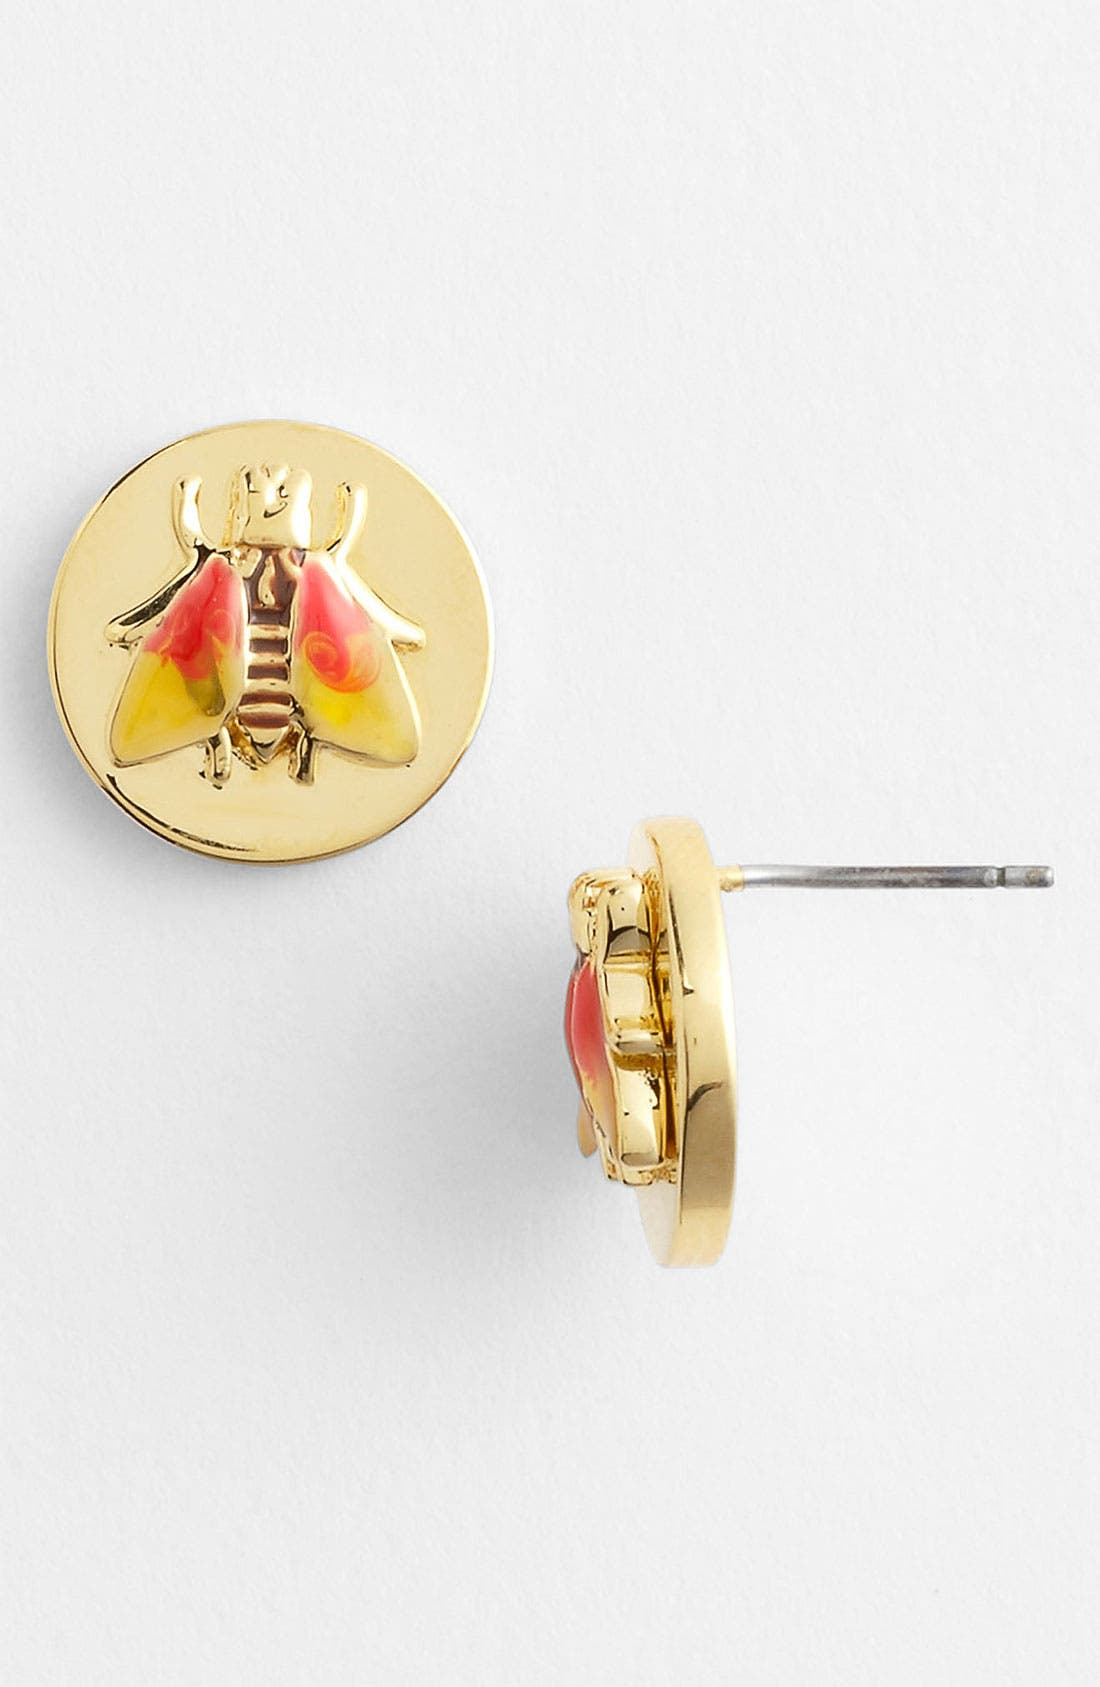 Main Image - Tory Burch 'Buddy' Stud Earrings